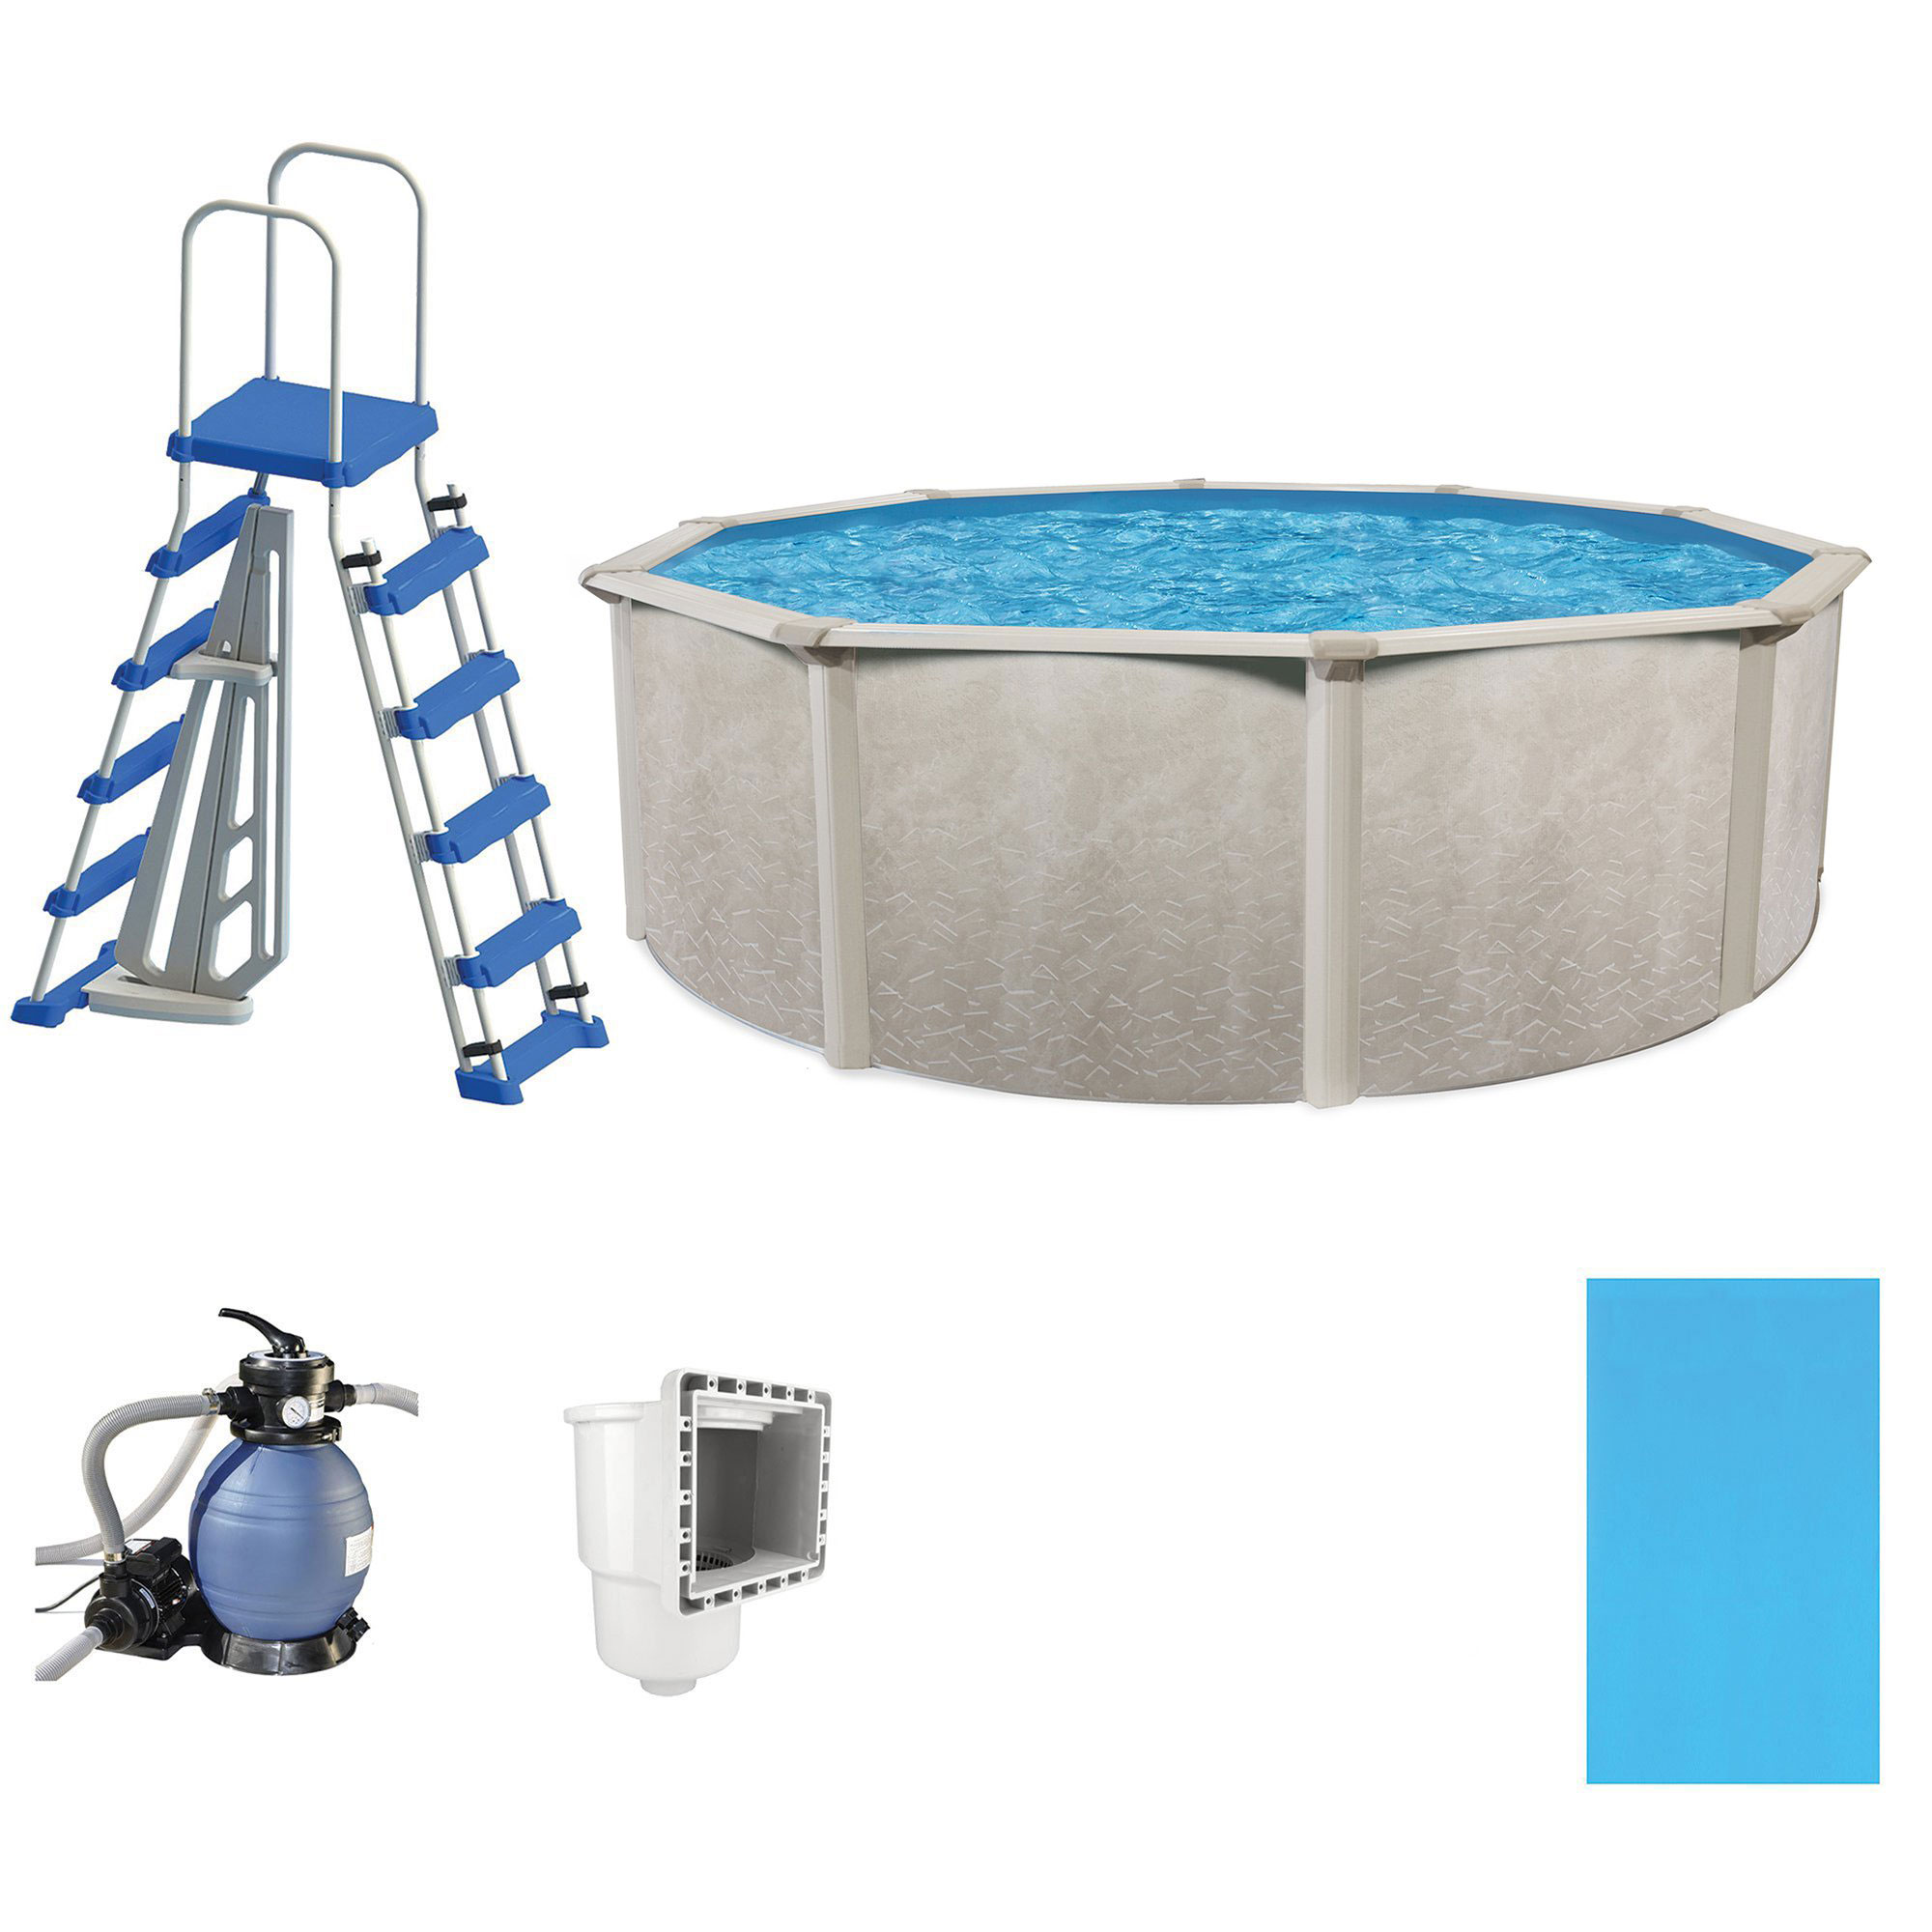 Cornelius pools phoenix 21 39 x 52 frame above ground pool for Purchase above ground swimming pool